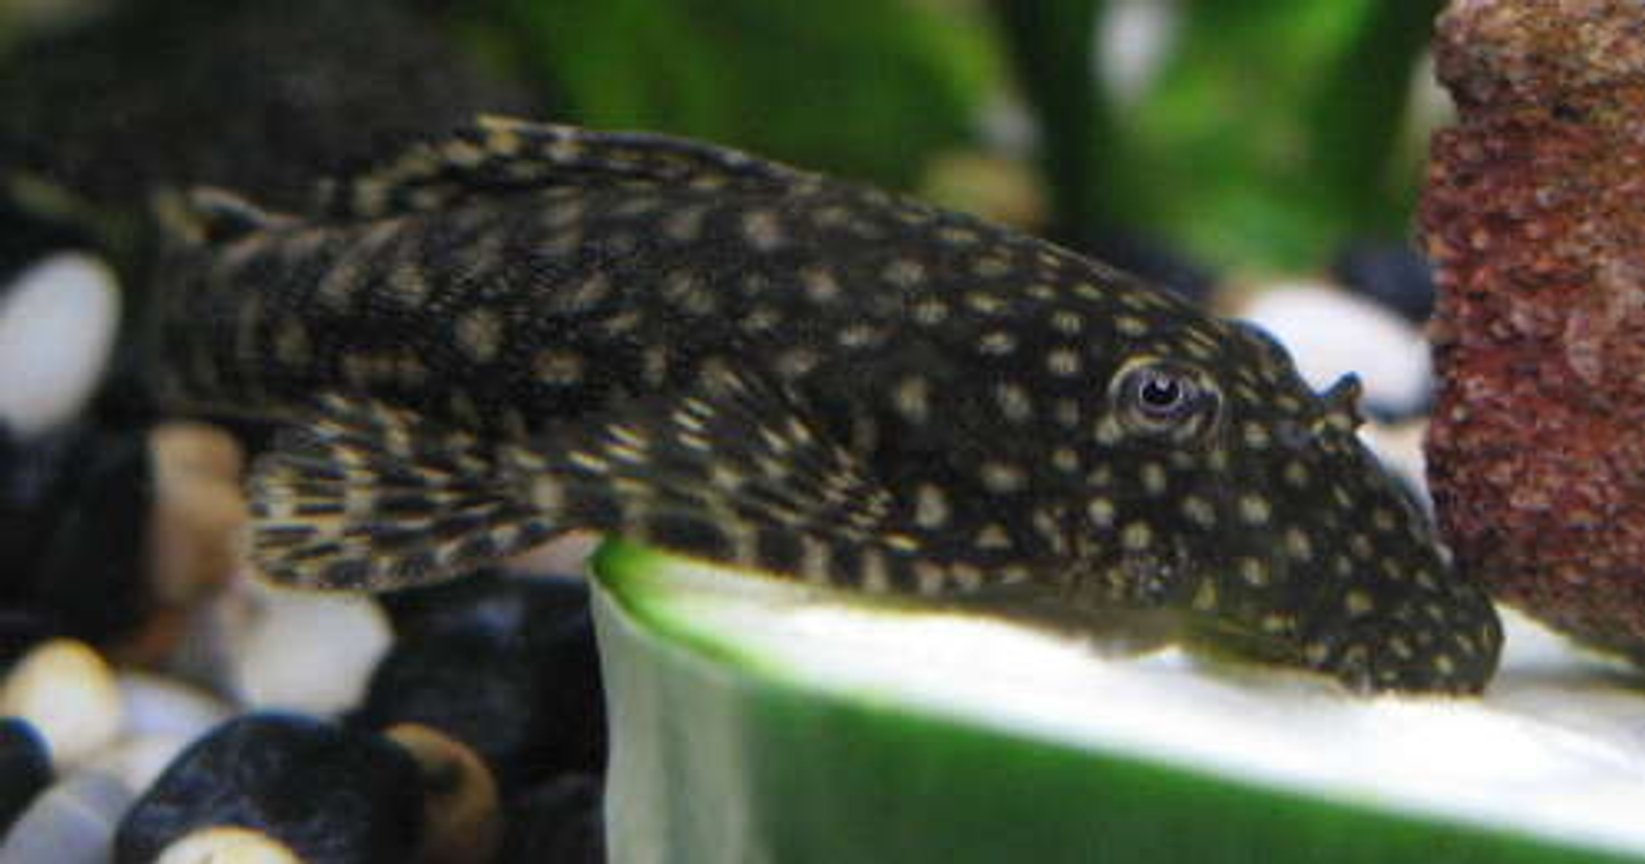 freshwater fish - scobinancistrus pariolispos - pario-ancistrus pleco (l-048) stocking in 44 gallons tank - Ancistrus munching on cucumber.